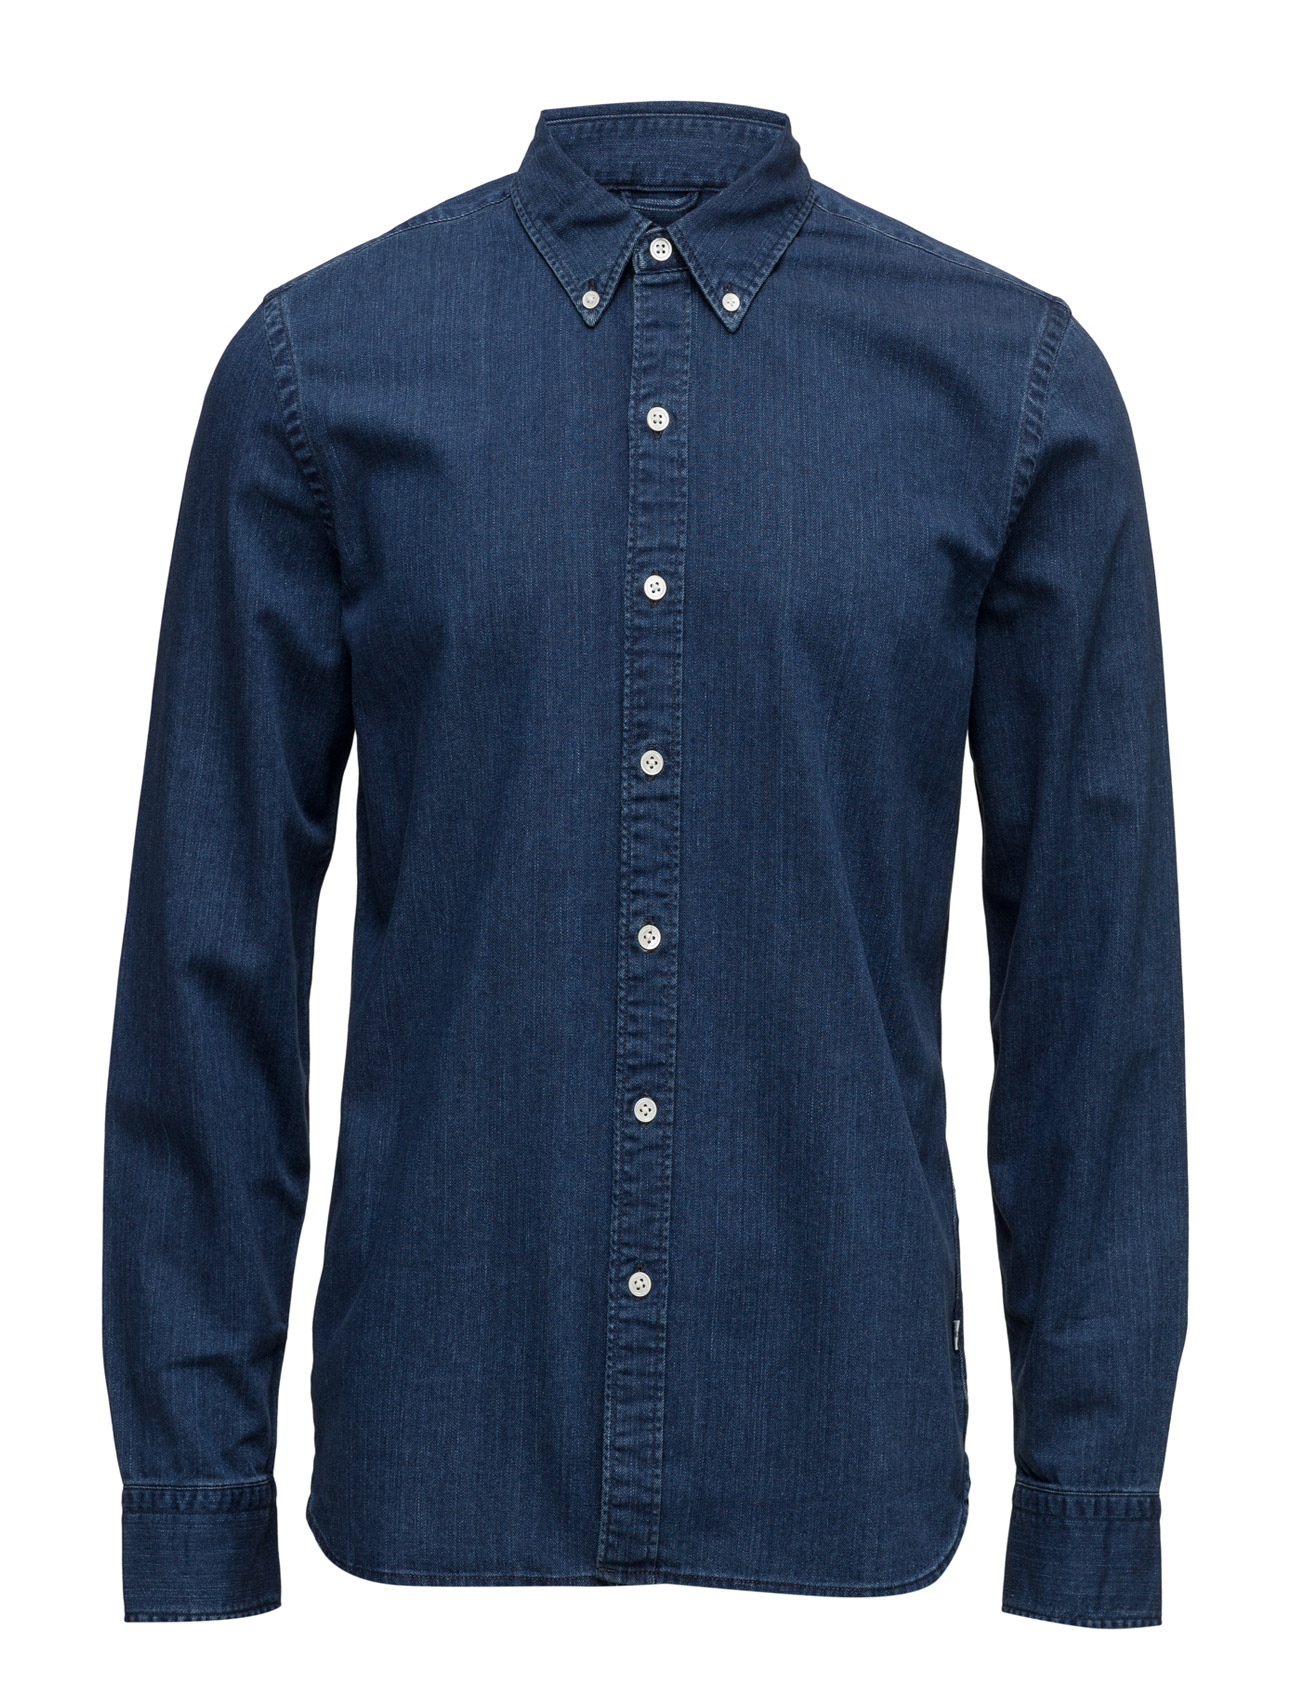 Ls Pacific No Pkt Shirt LEVI¥S Men Casual sko til Herrer i